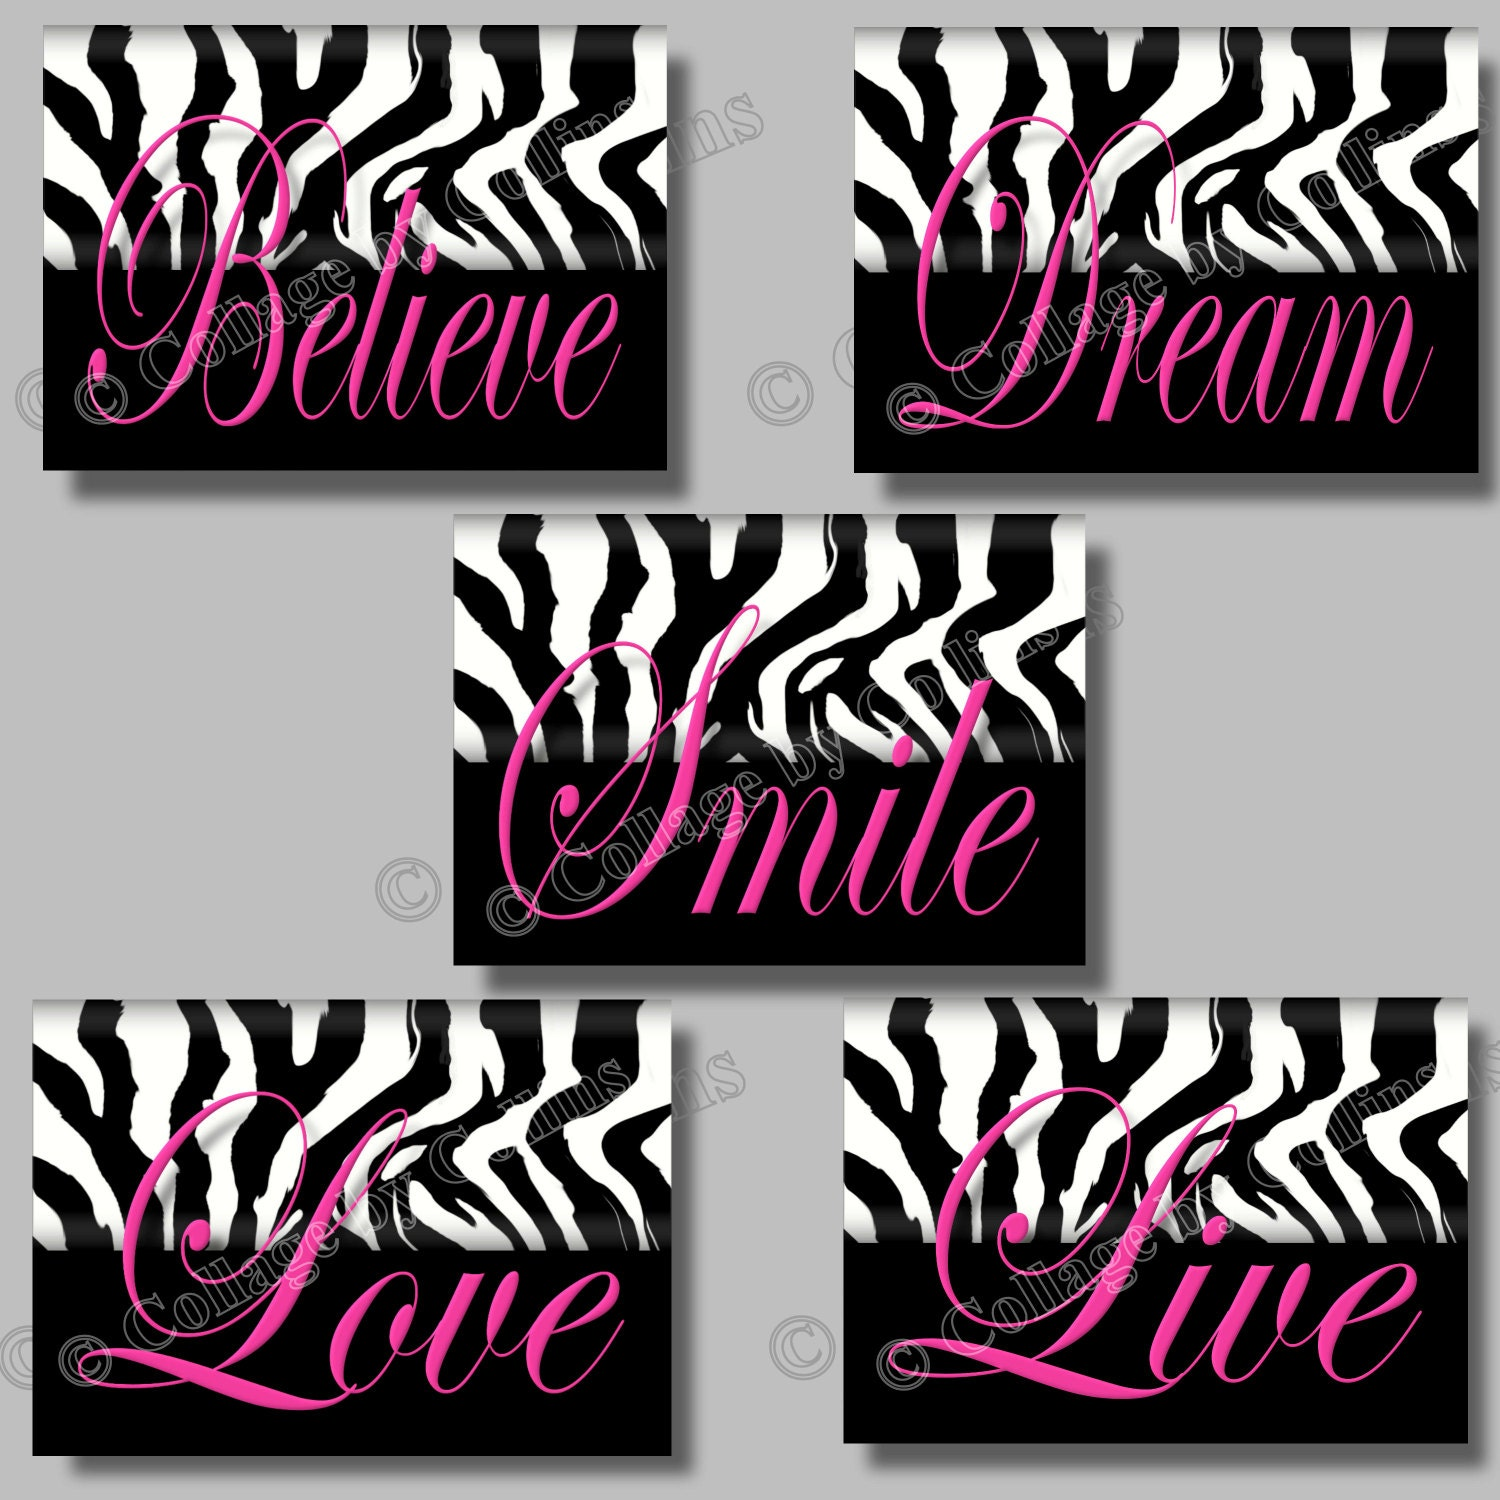 Pink zebra print wall art girls teen room decor dorm live for Room decor zebra print